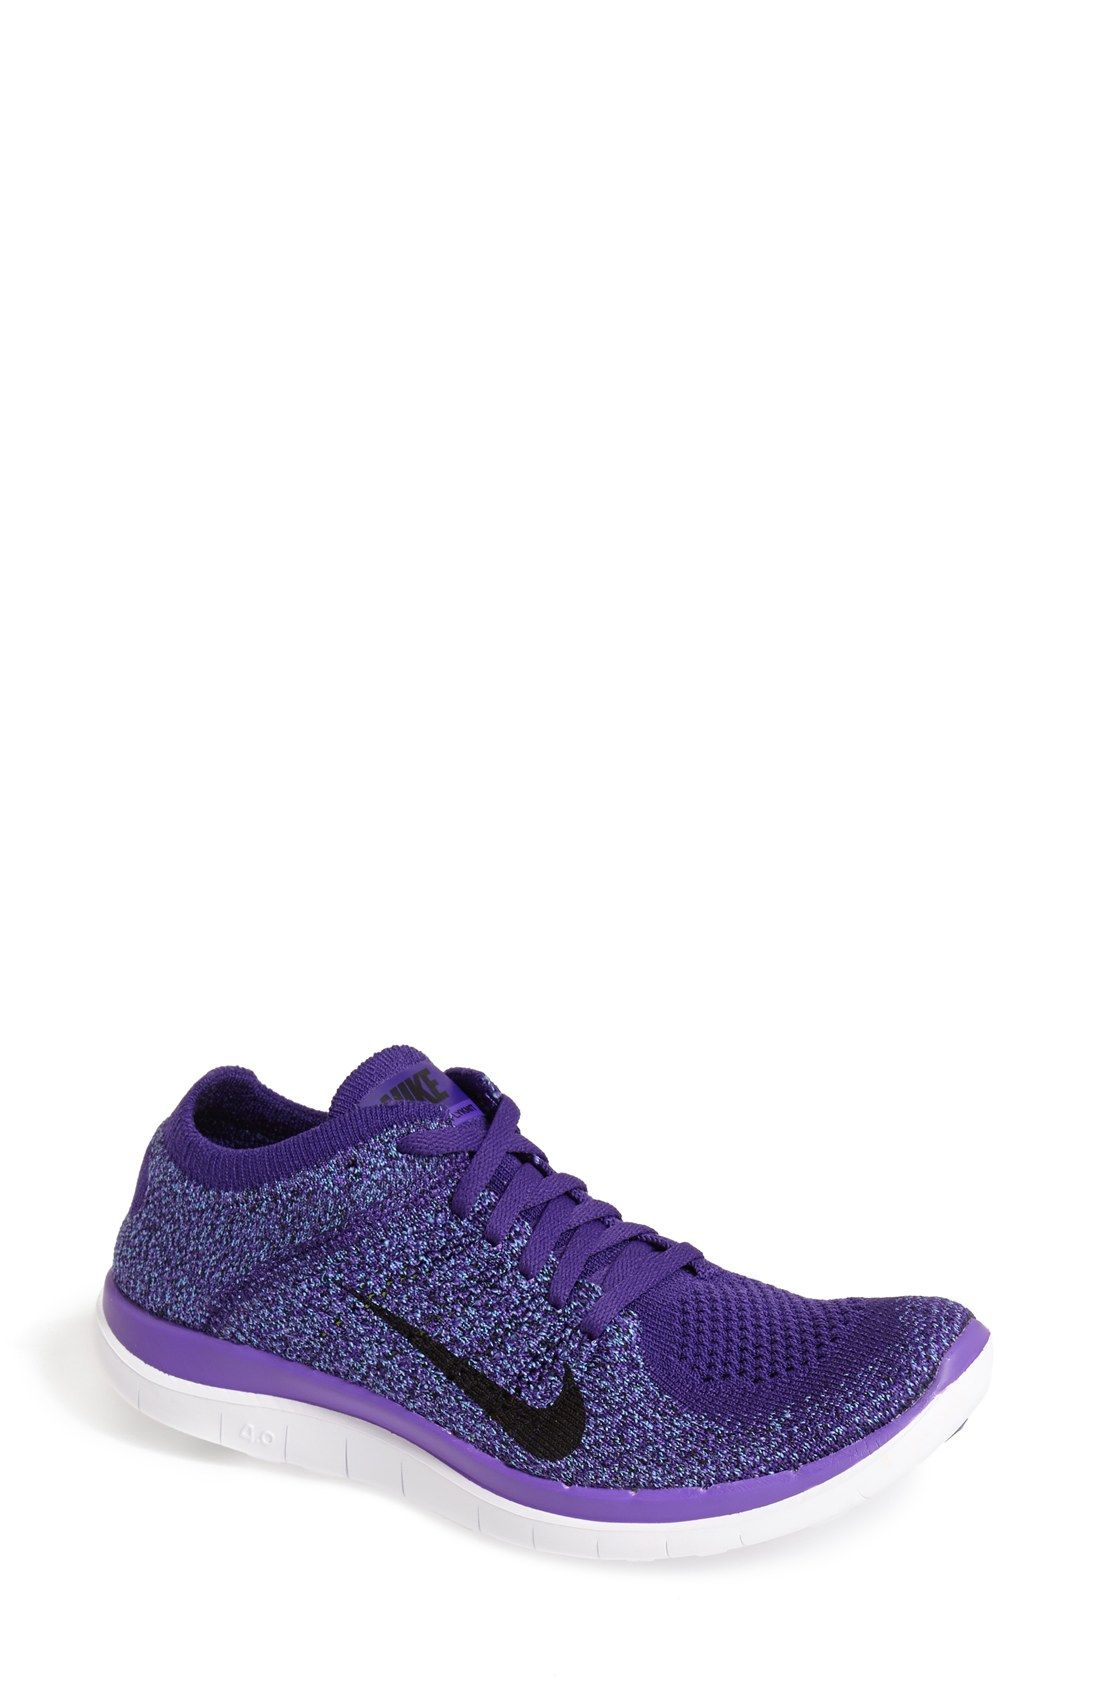 fd5f6d71d450c Crushing on these purple Nike running shoes.